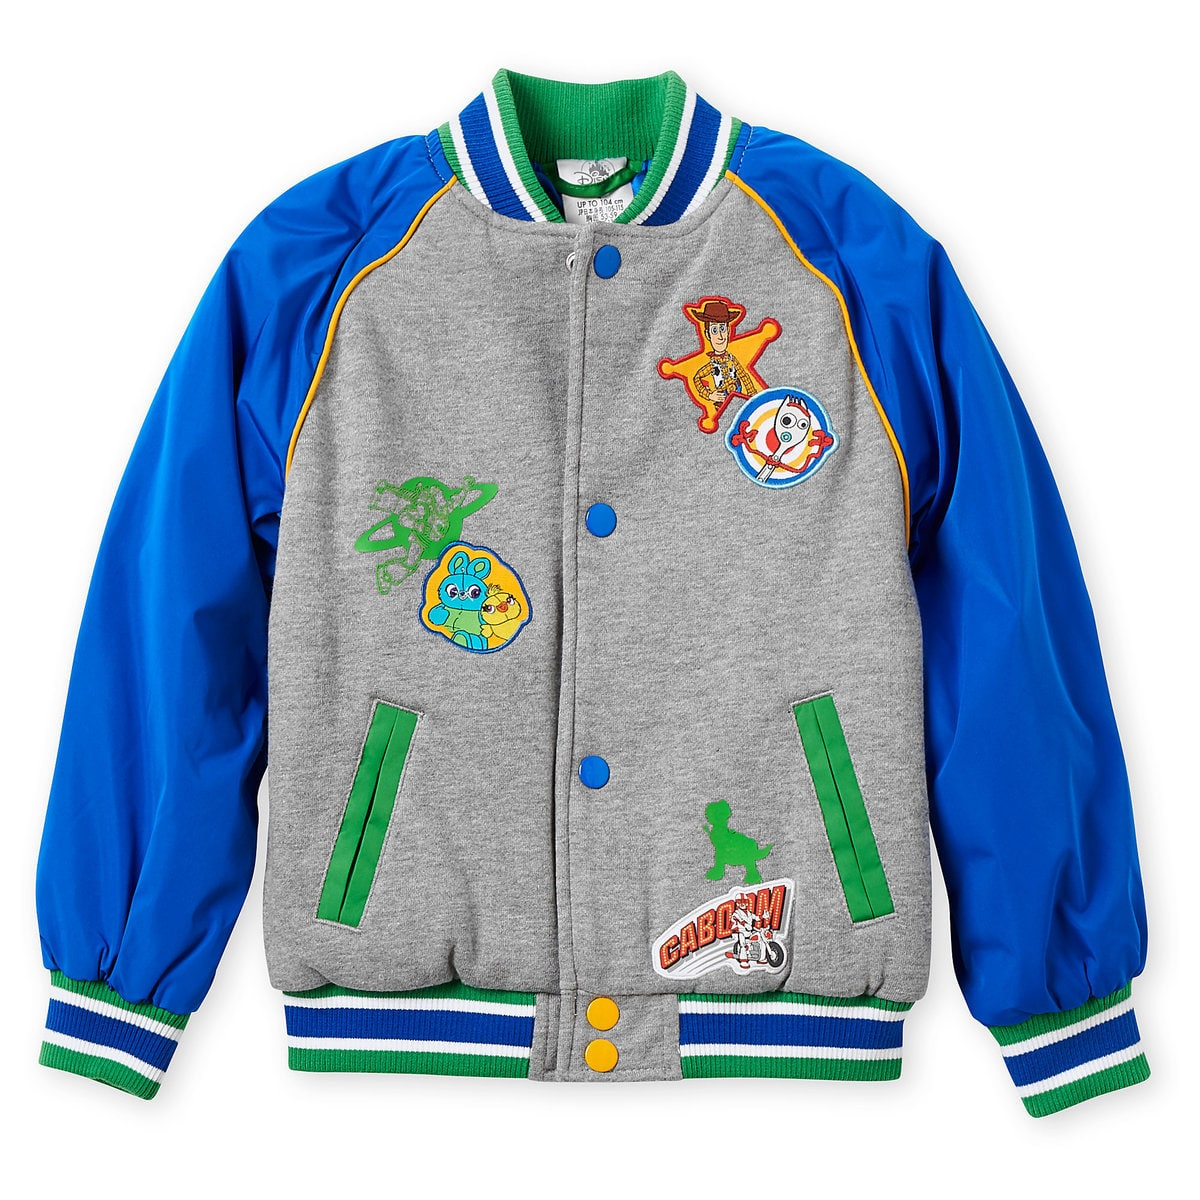 This toddler Toy Story jacket is perfect for chilly weather | Top 25 Disney Gift Ideas for Toddlers featured by top US Disney blogger, Marcie and the Mouse